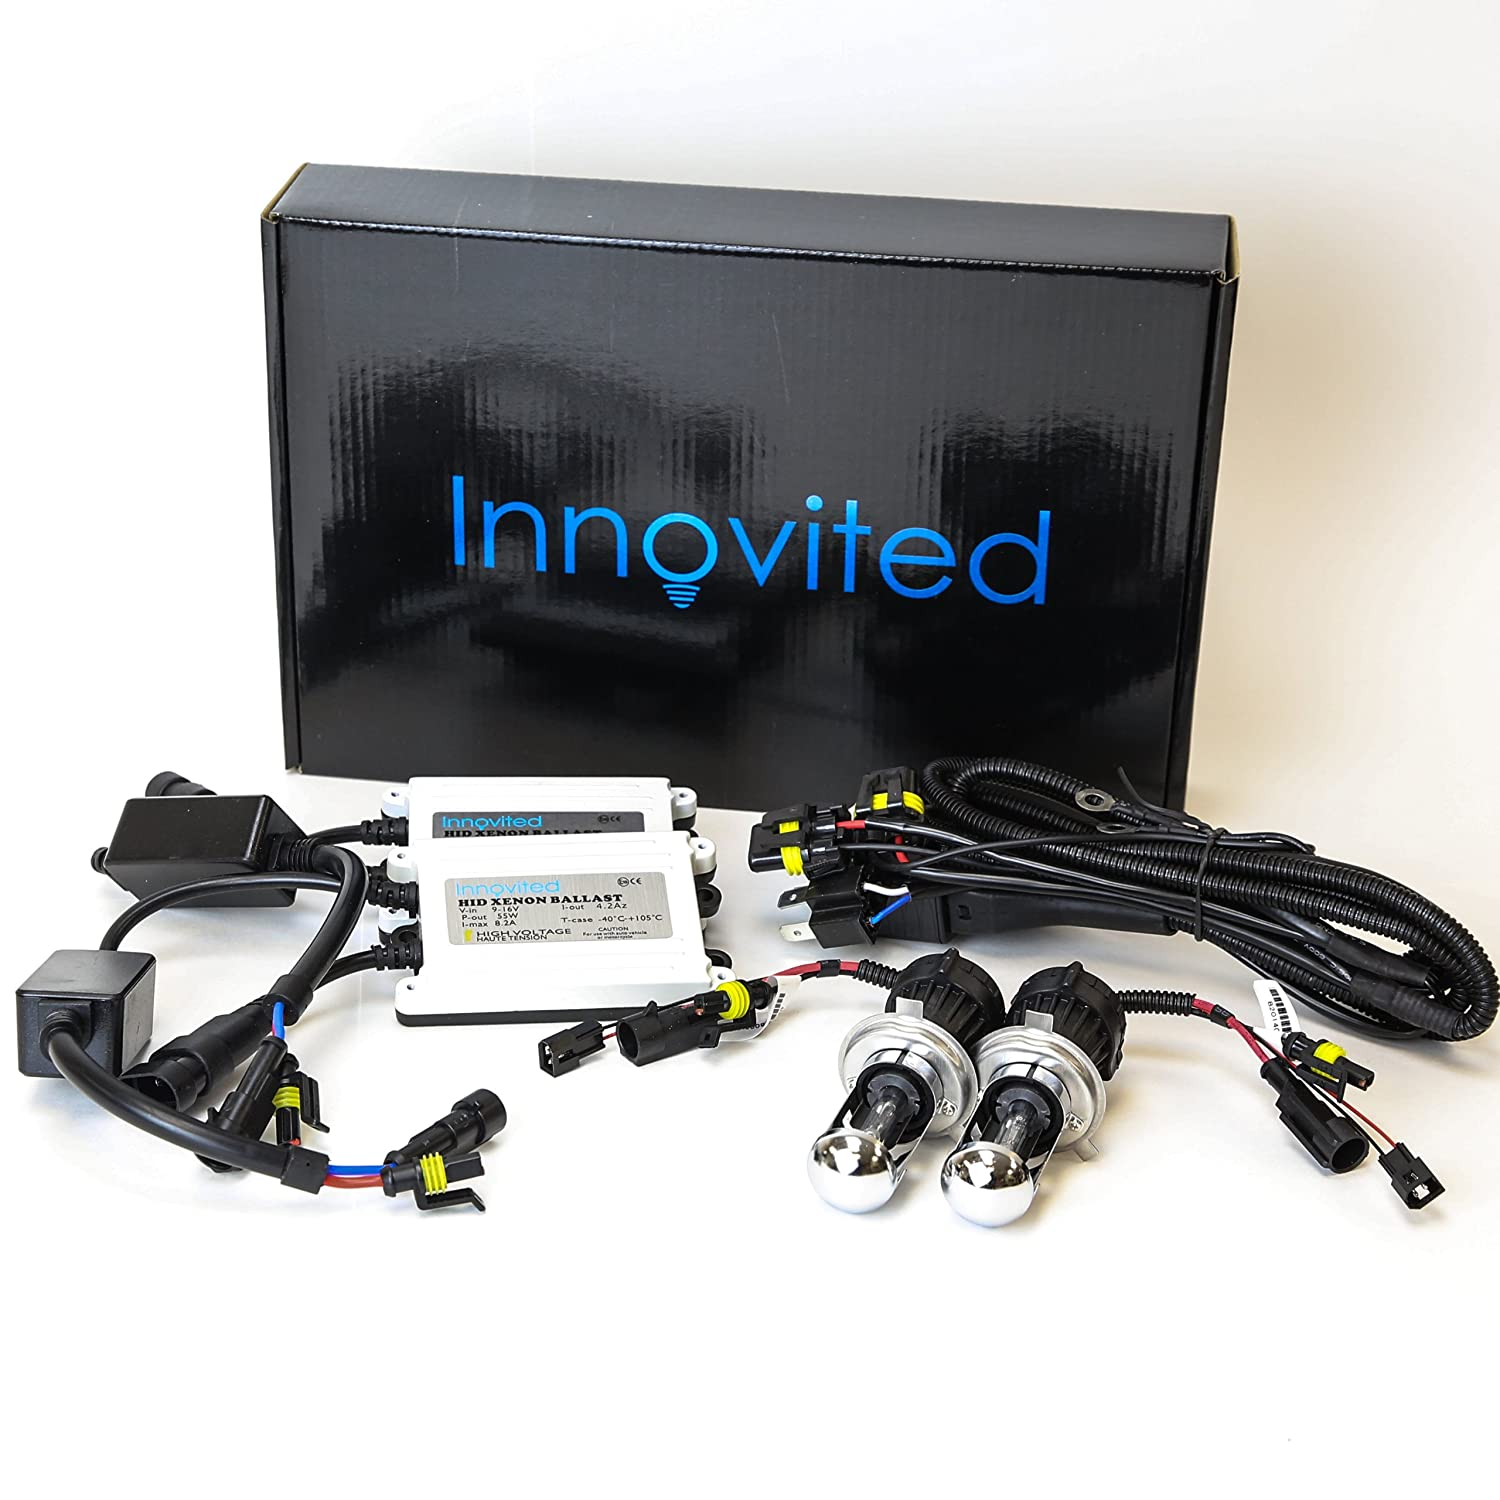 Amazon.com: Innovited AC 55W BI-XENON HI/LOW DUAL BEAM HID Kit - H4 9003  6000K - 2 Year Warranty: Automotive